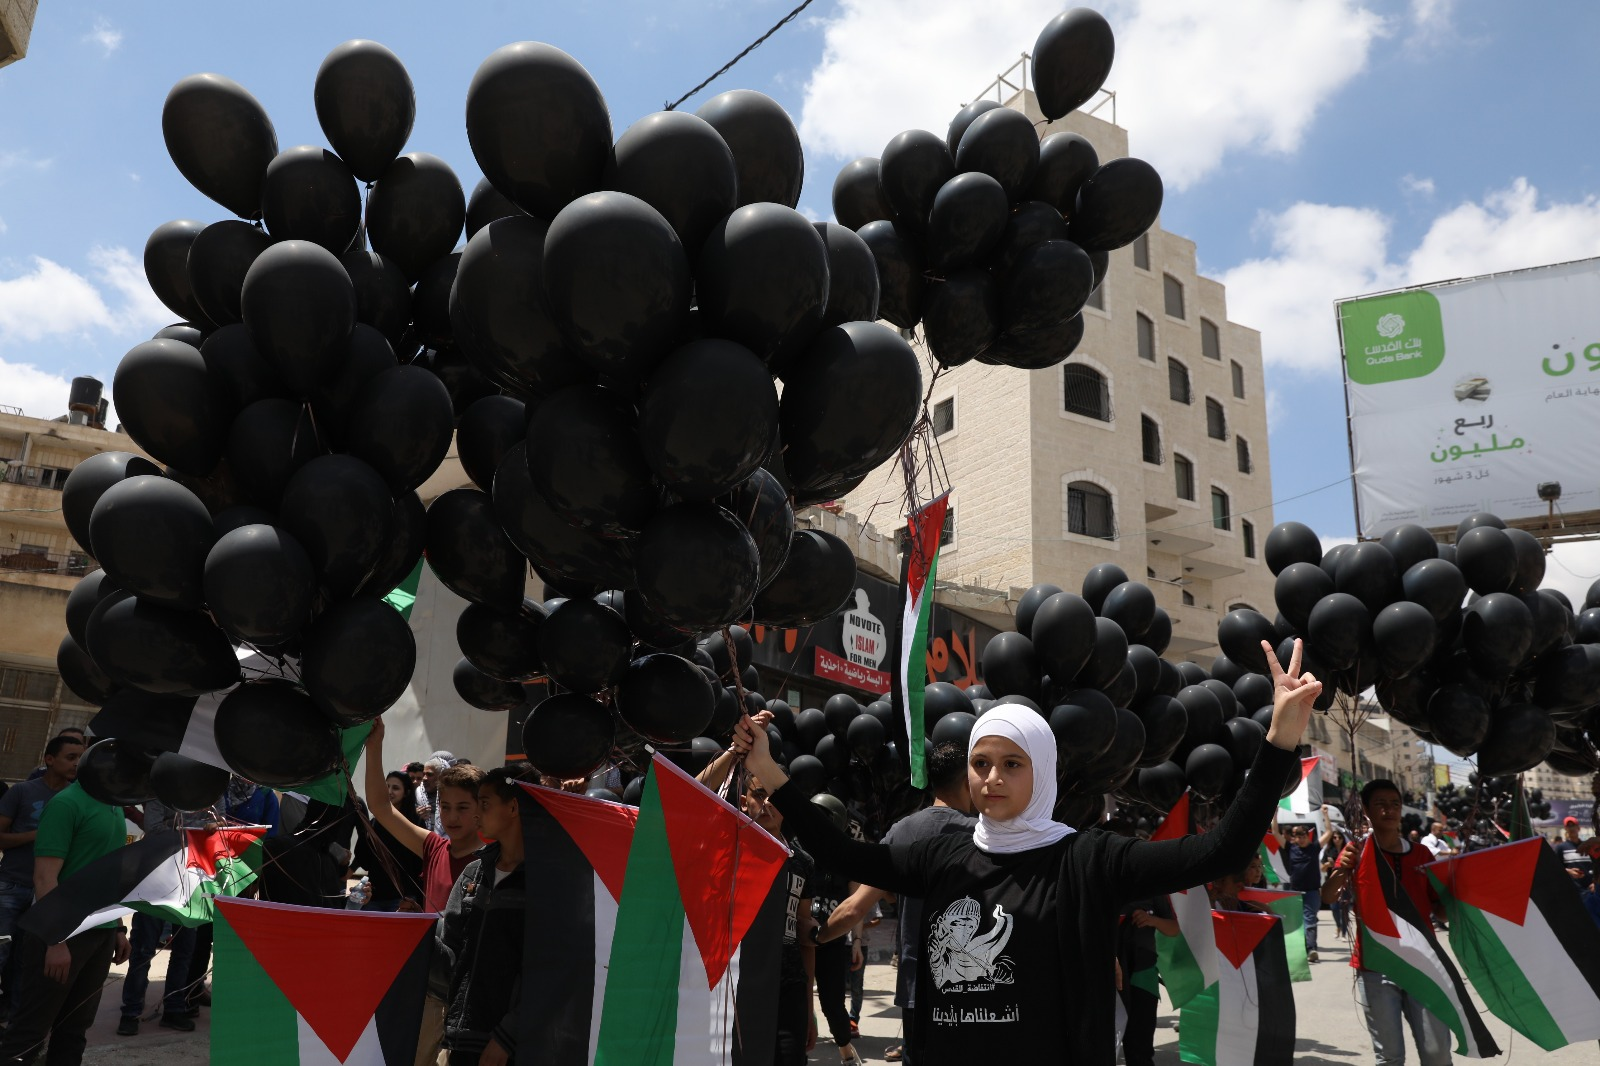 Palestinians in Qalandiya checkpoint fly Palestinian flags attached to balloons, in solidarity with Gaza and against the opening of the new U.S. embassy in Jerusalem, May 14, 2018. (Oren Ziv/Activestills.org)